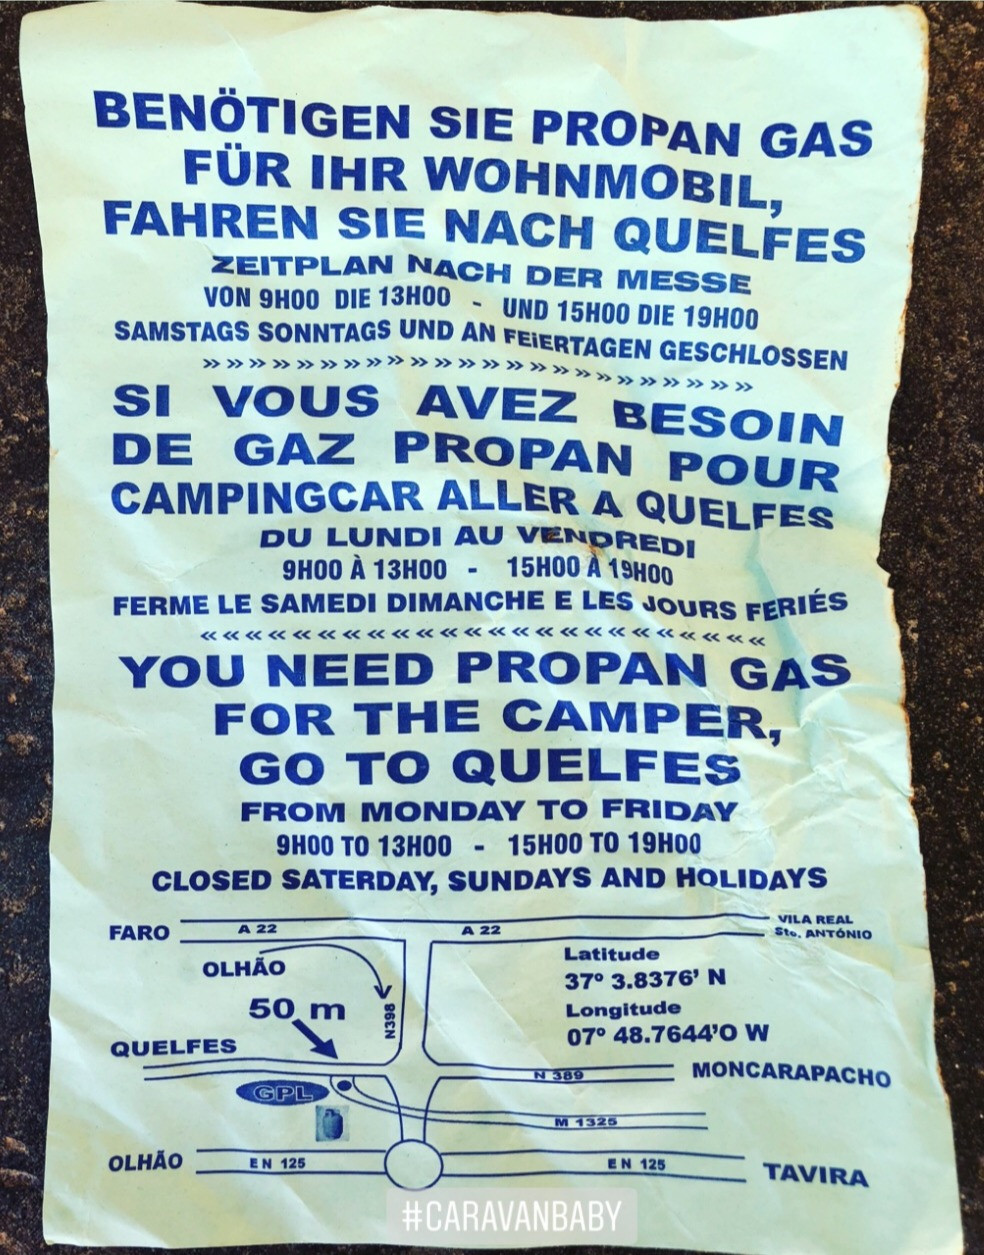 Flier describing where to refill propane gas (LPG) in Portugal, refilling any european propane canister.